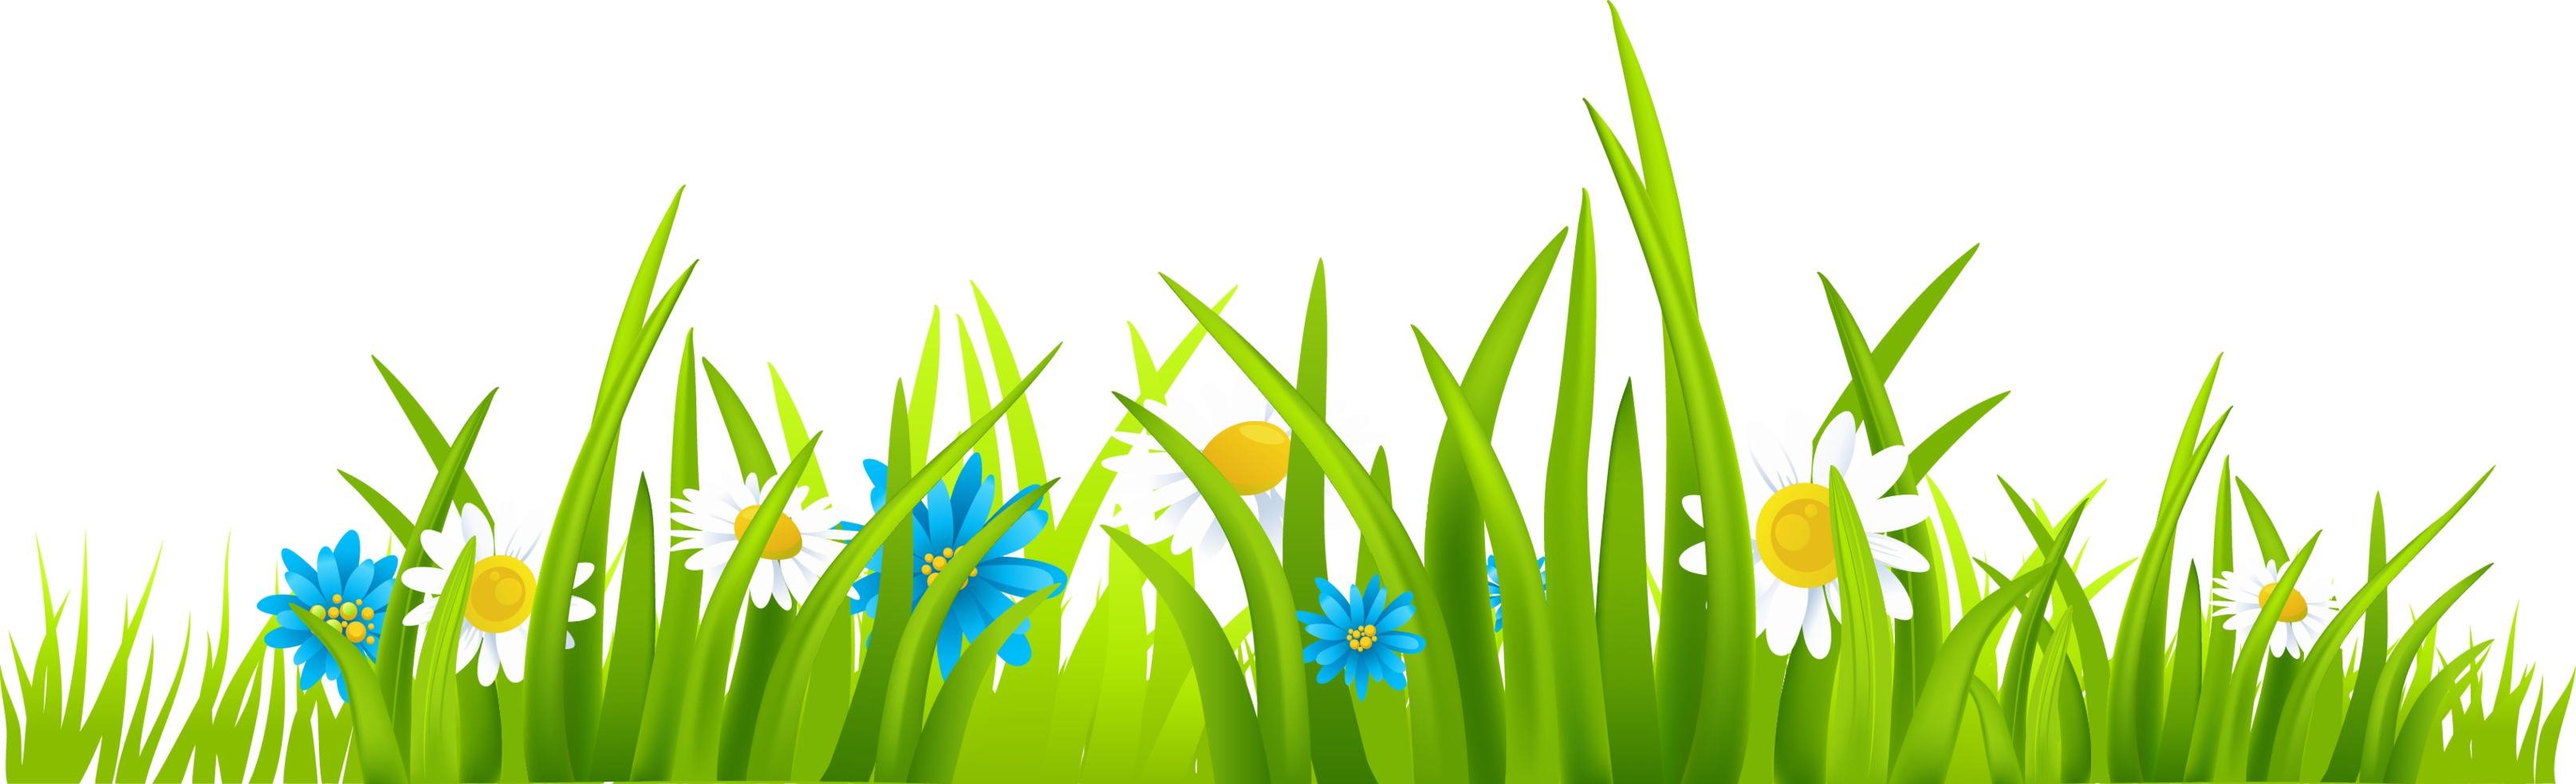 Clipart grass animated. Free content download website